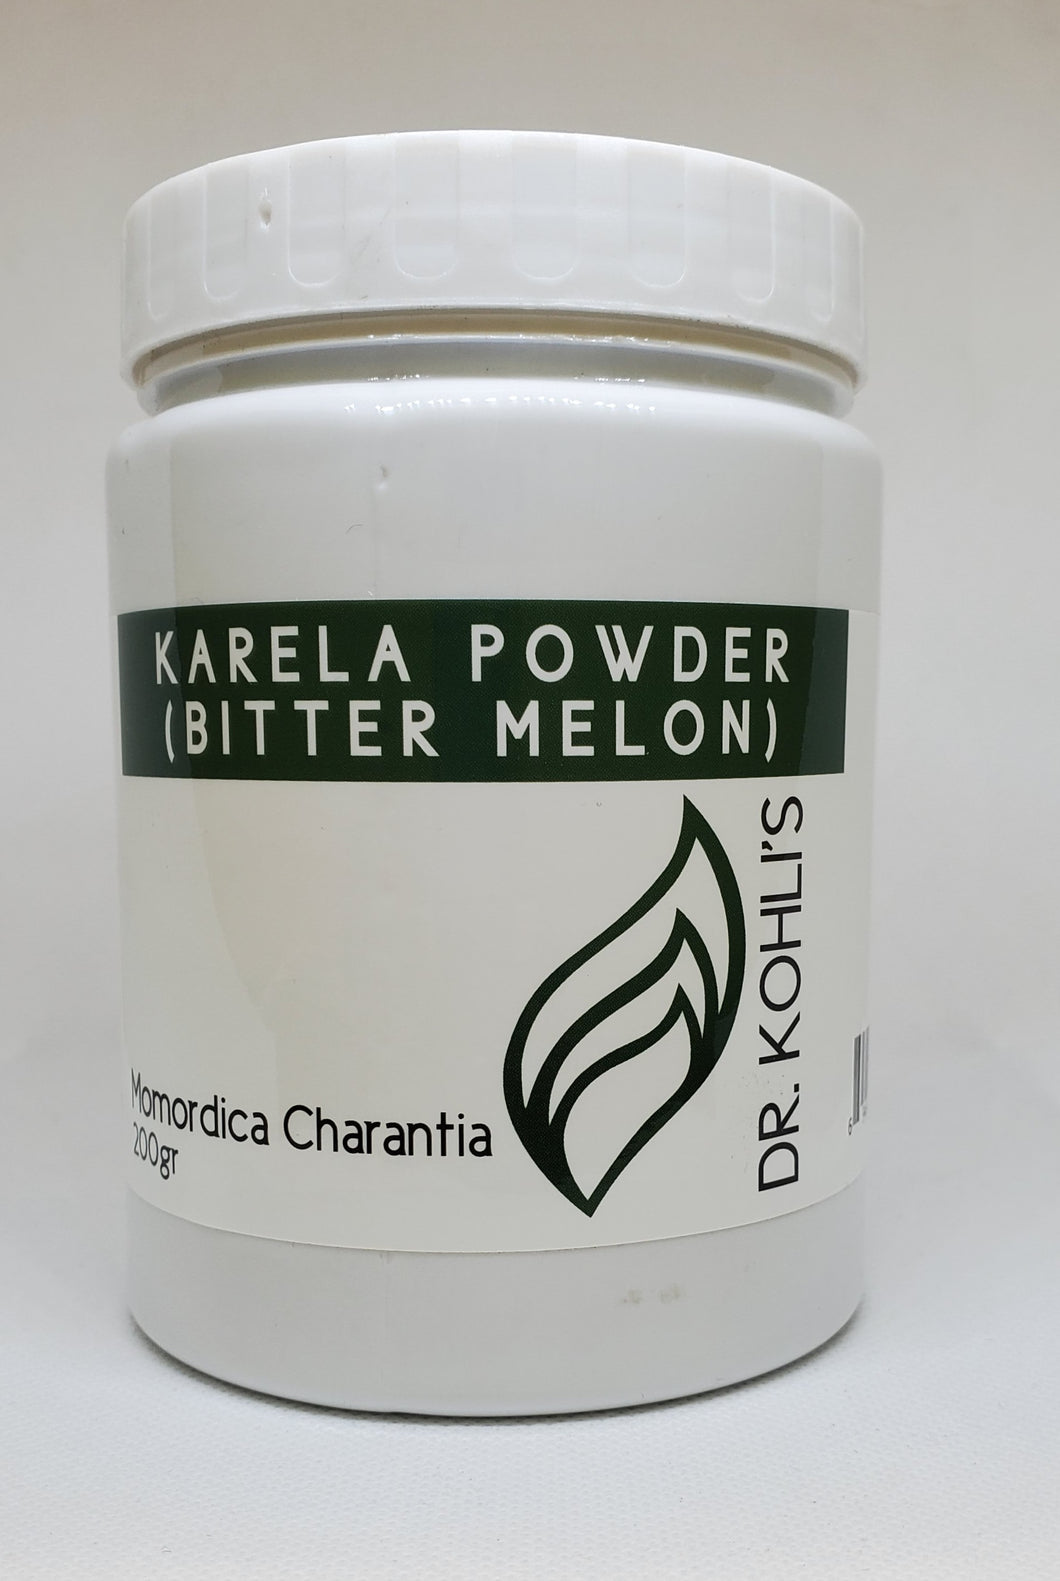 Karela powder - Dr. Kohli's Herbal Products